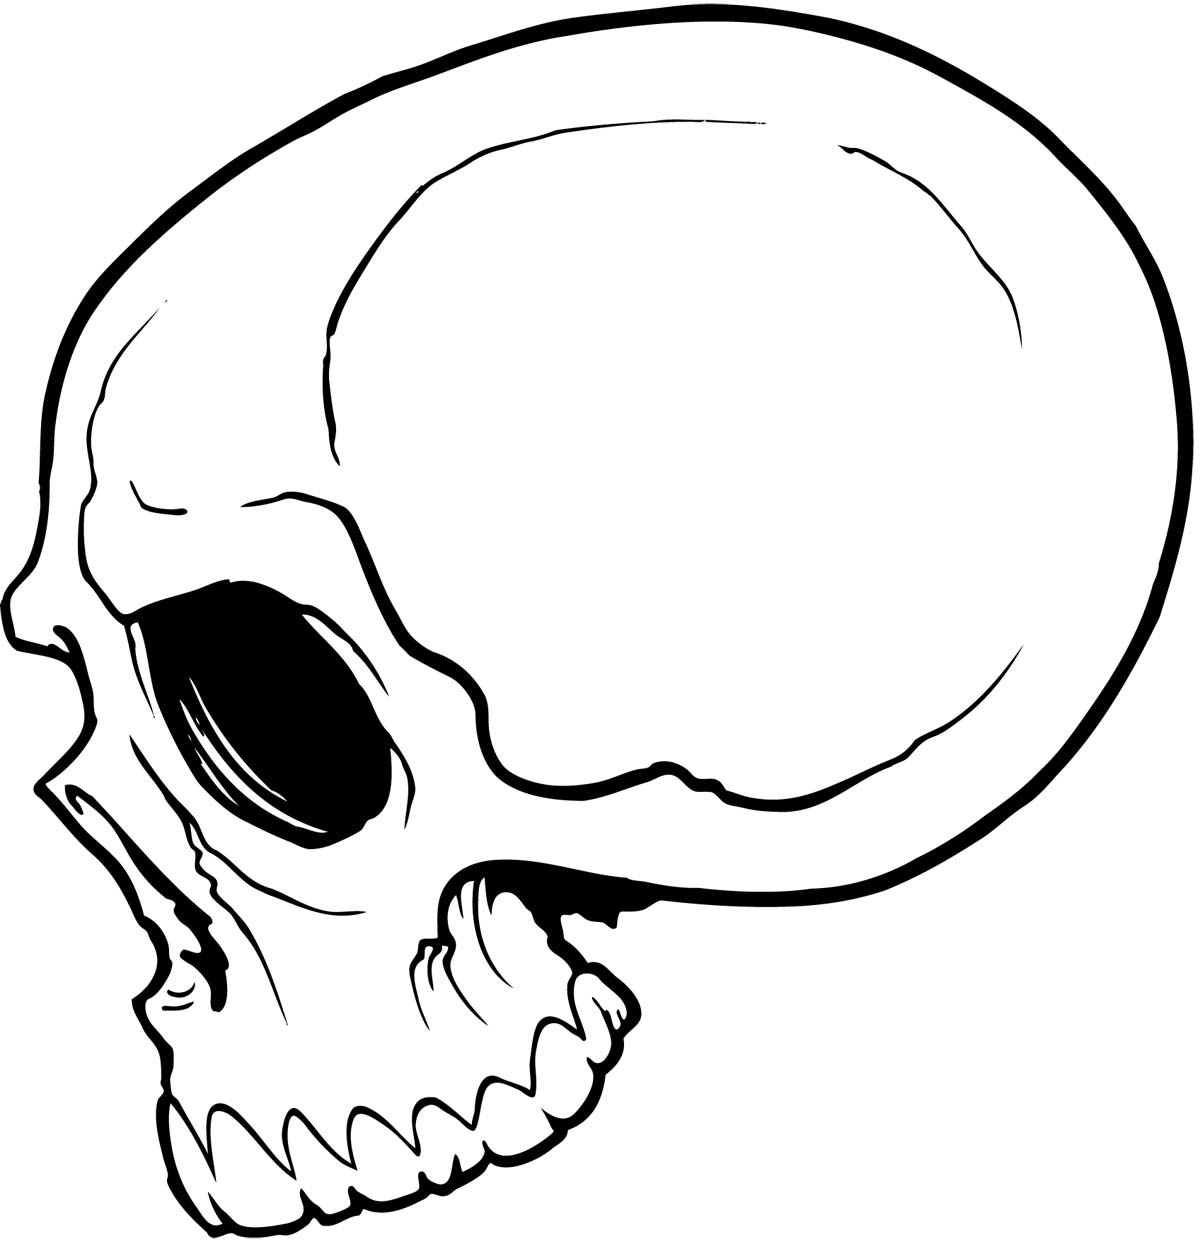 Skull Line Drawing Easy : Skull drawing images cliparts